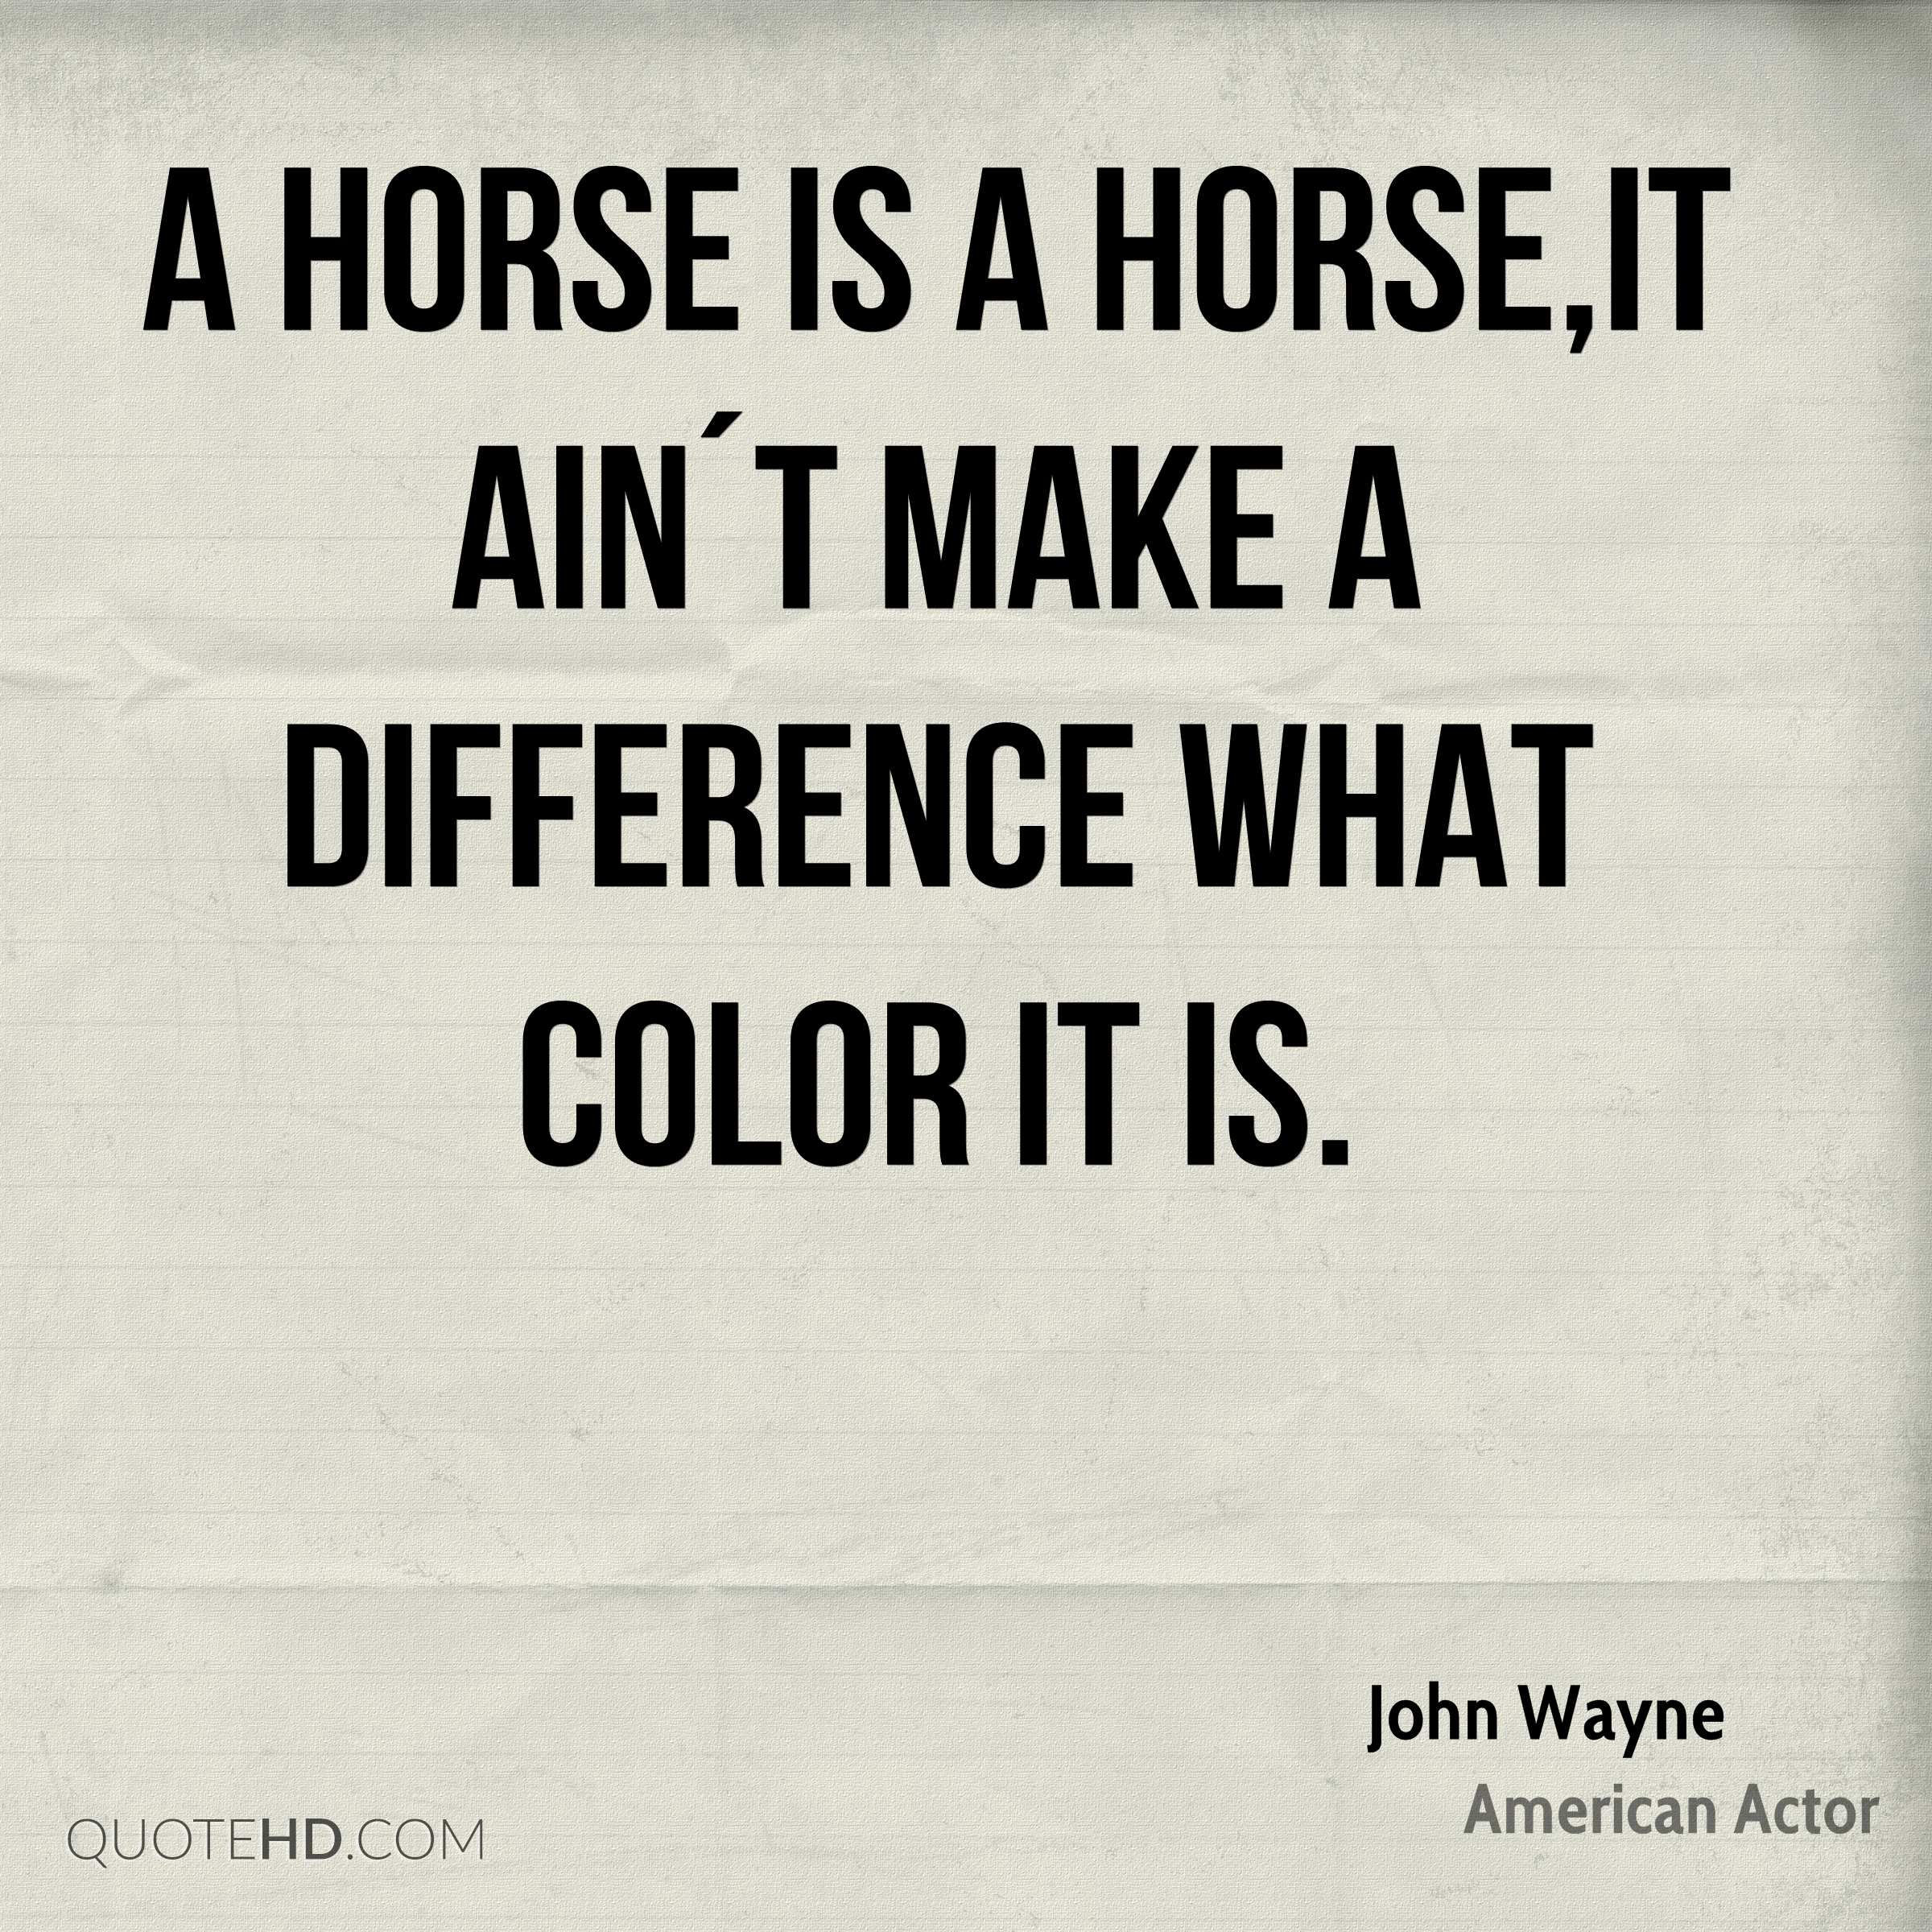 A horse is a horse,it ain´t make a difference what color it is.